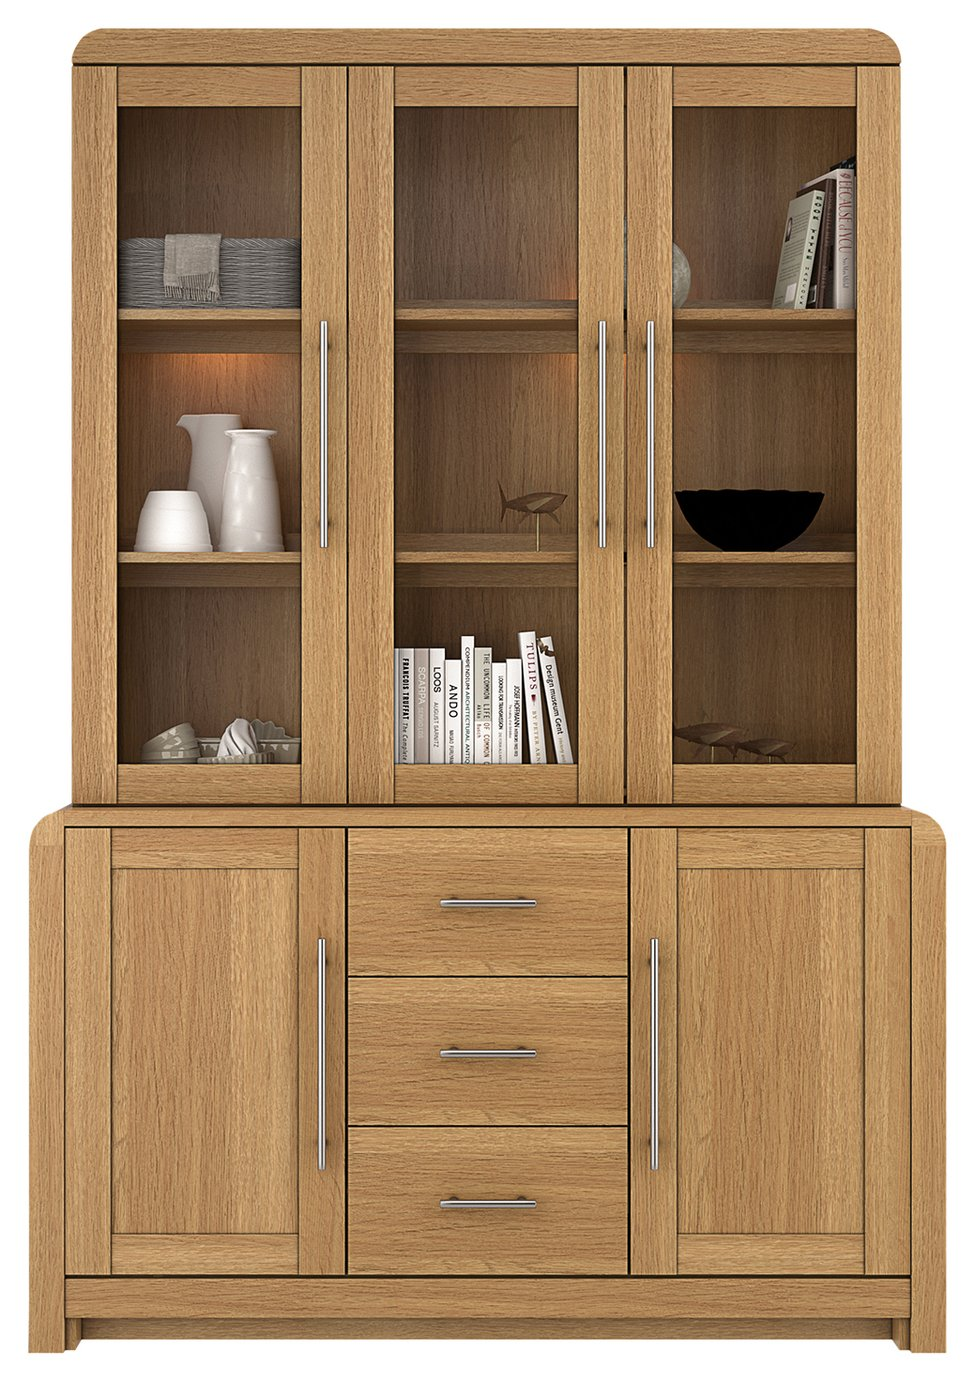 Buy bathroom cabinets at argos co uk your online shop for home and - Buy Stool Doors At Argos Co Uk Your Online Shop For Home And Buy Stool Doors At Argos Co Uk Your Online Shop For Home And Garden